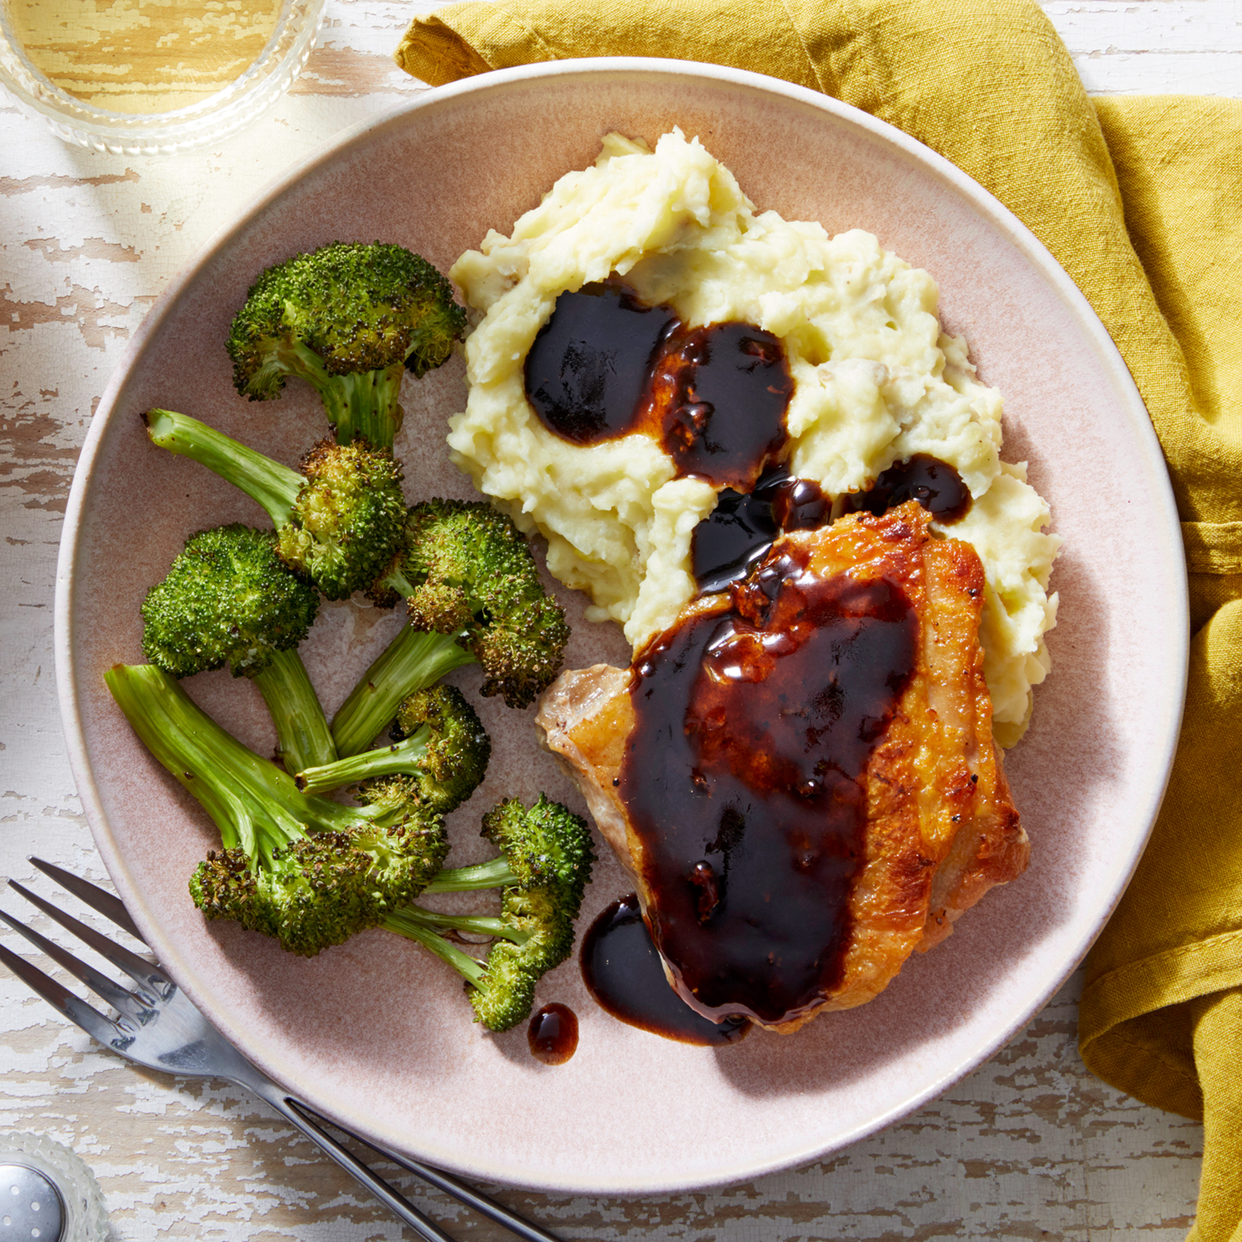 Balsamic-Glazed Chicken Thighs with Garlic Mashed Potatoes & Broccoli